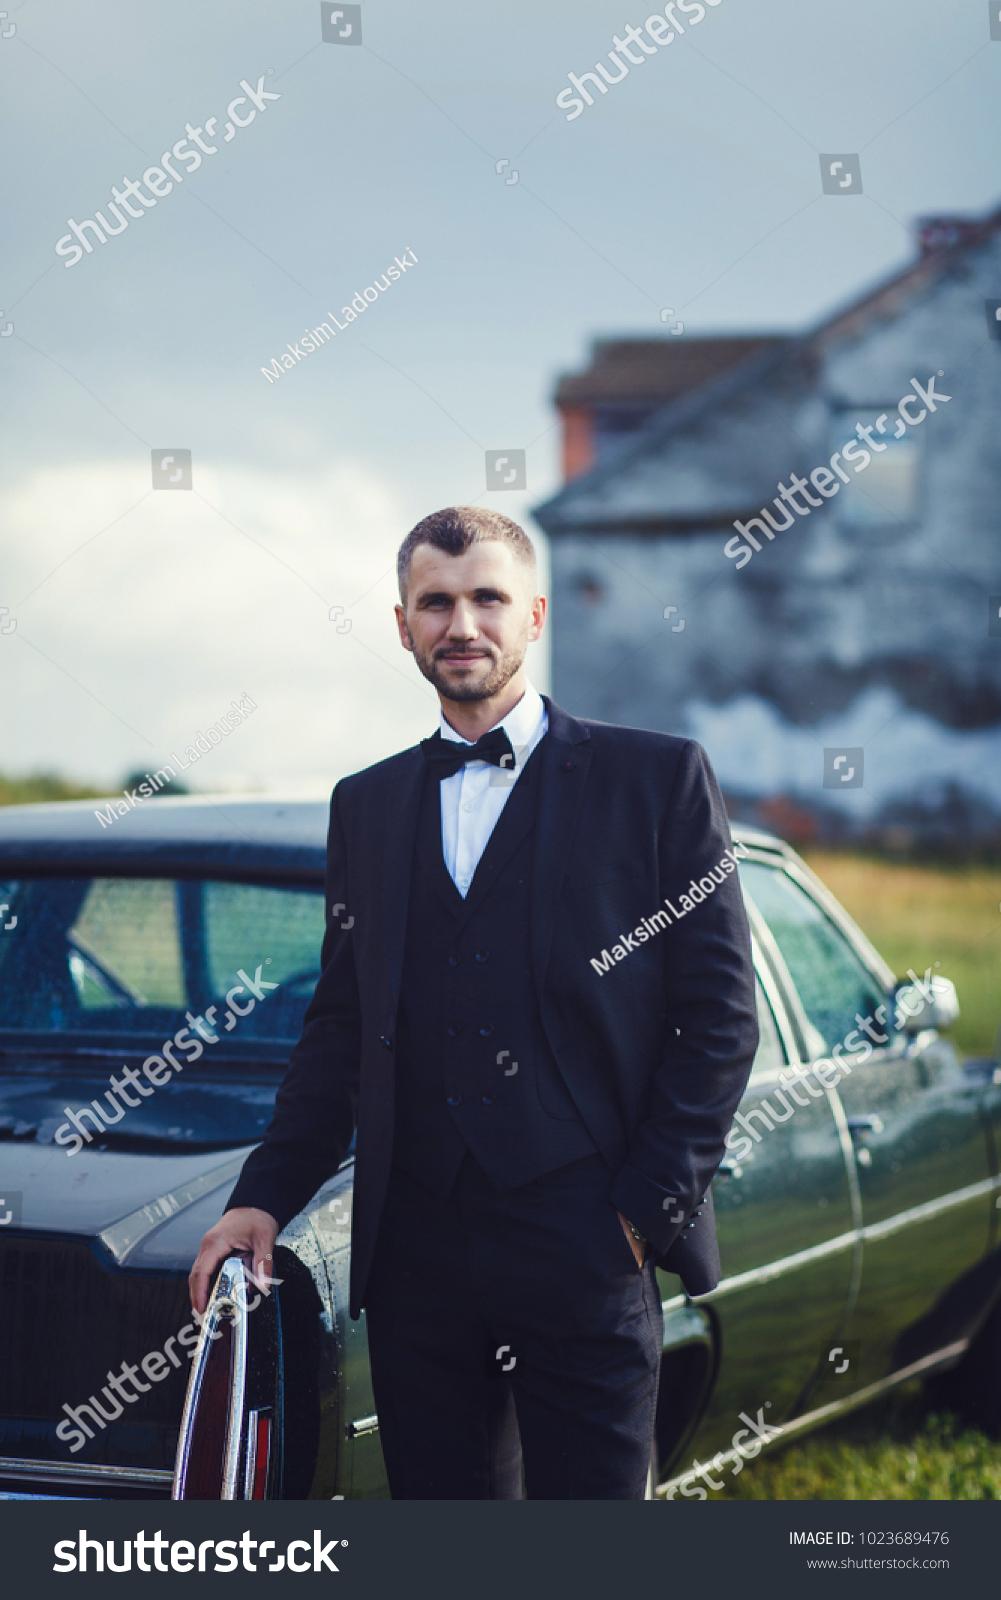 Groom Wedding Tuxedo Smiling Waiting Bride Stock Photo (Royalty Free ...